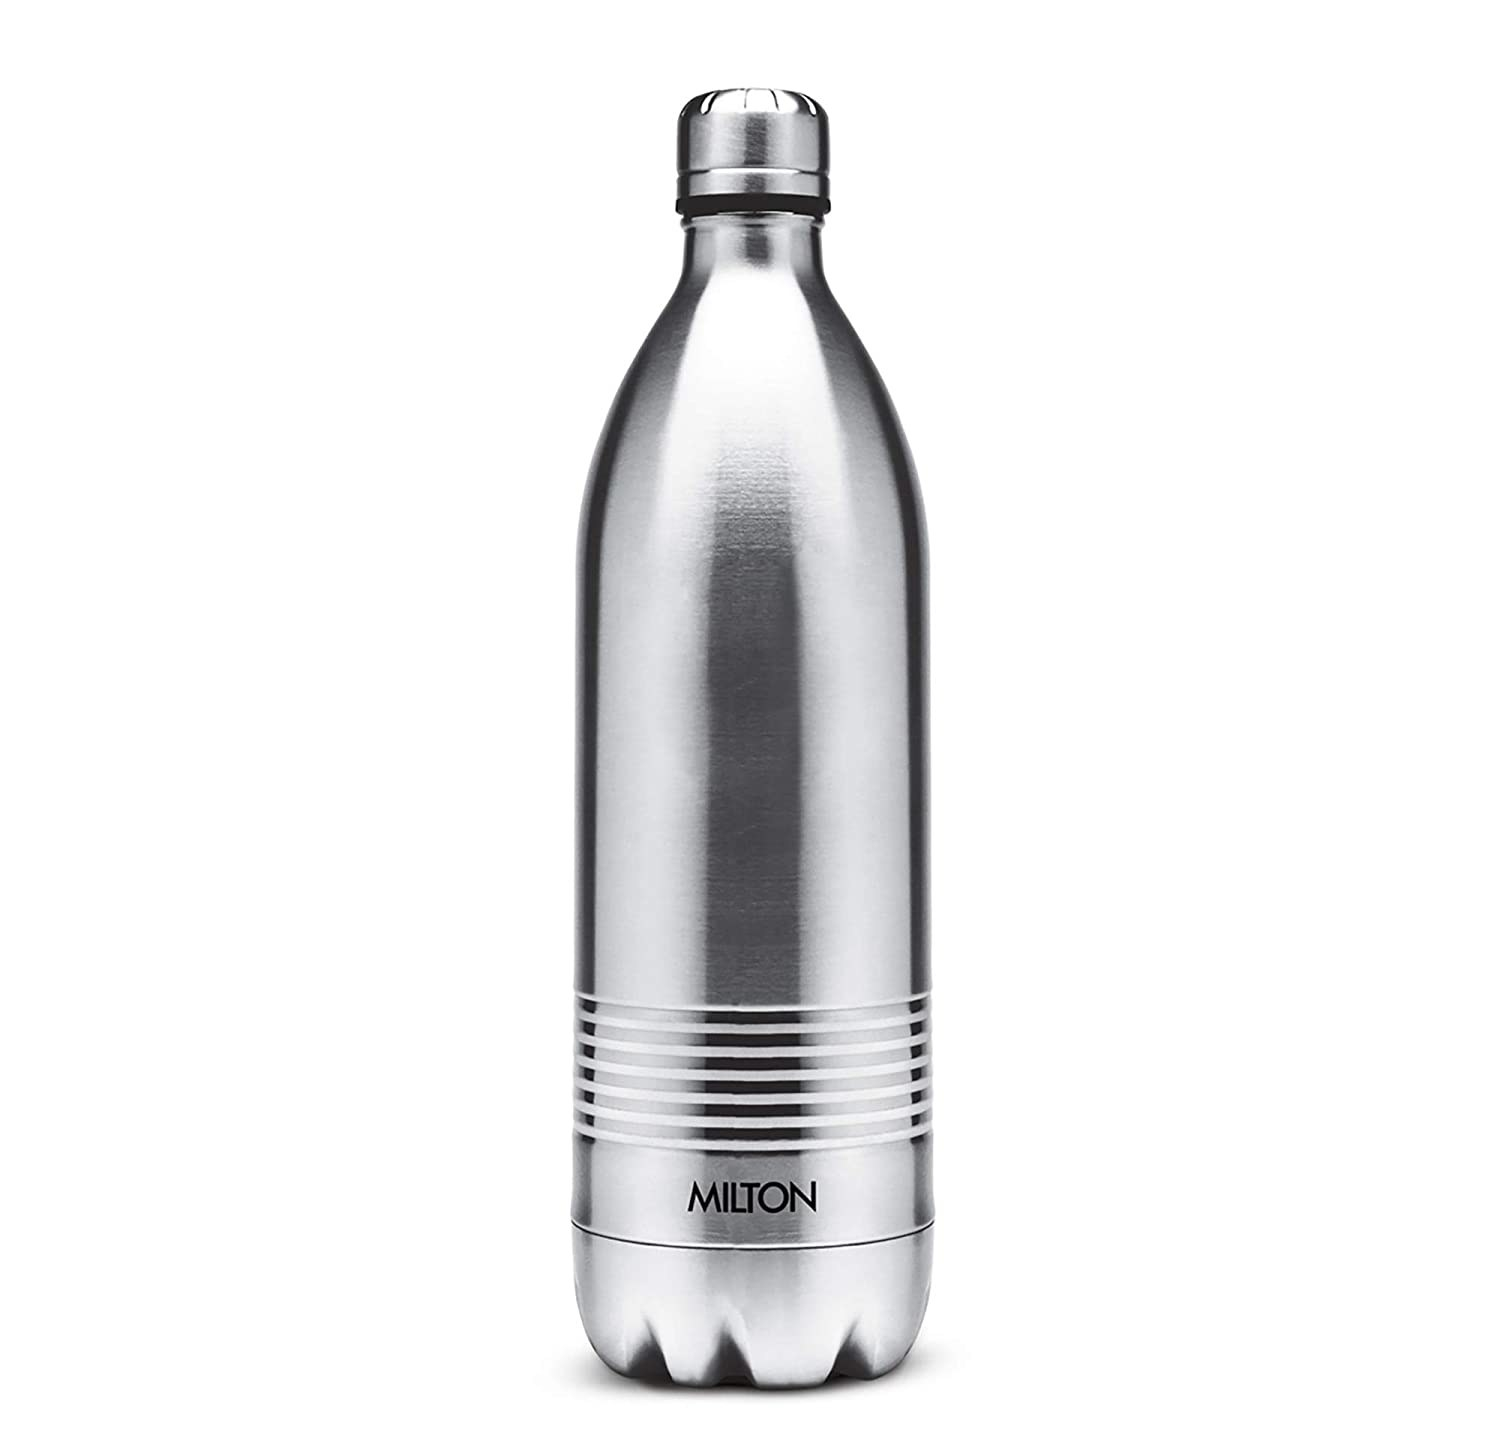 A silver insulated flask